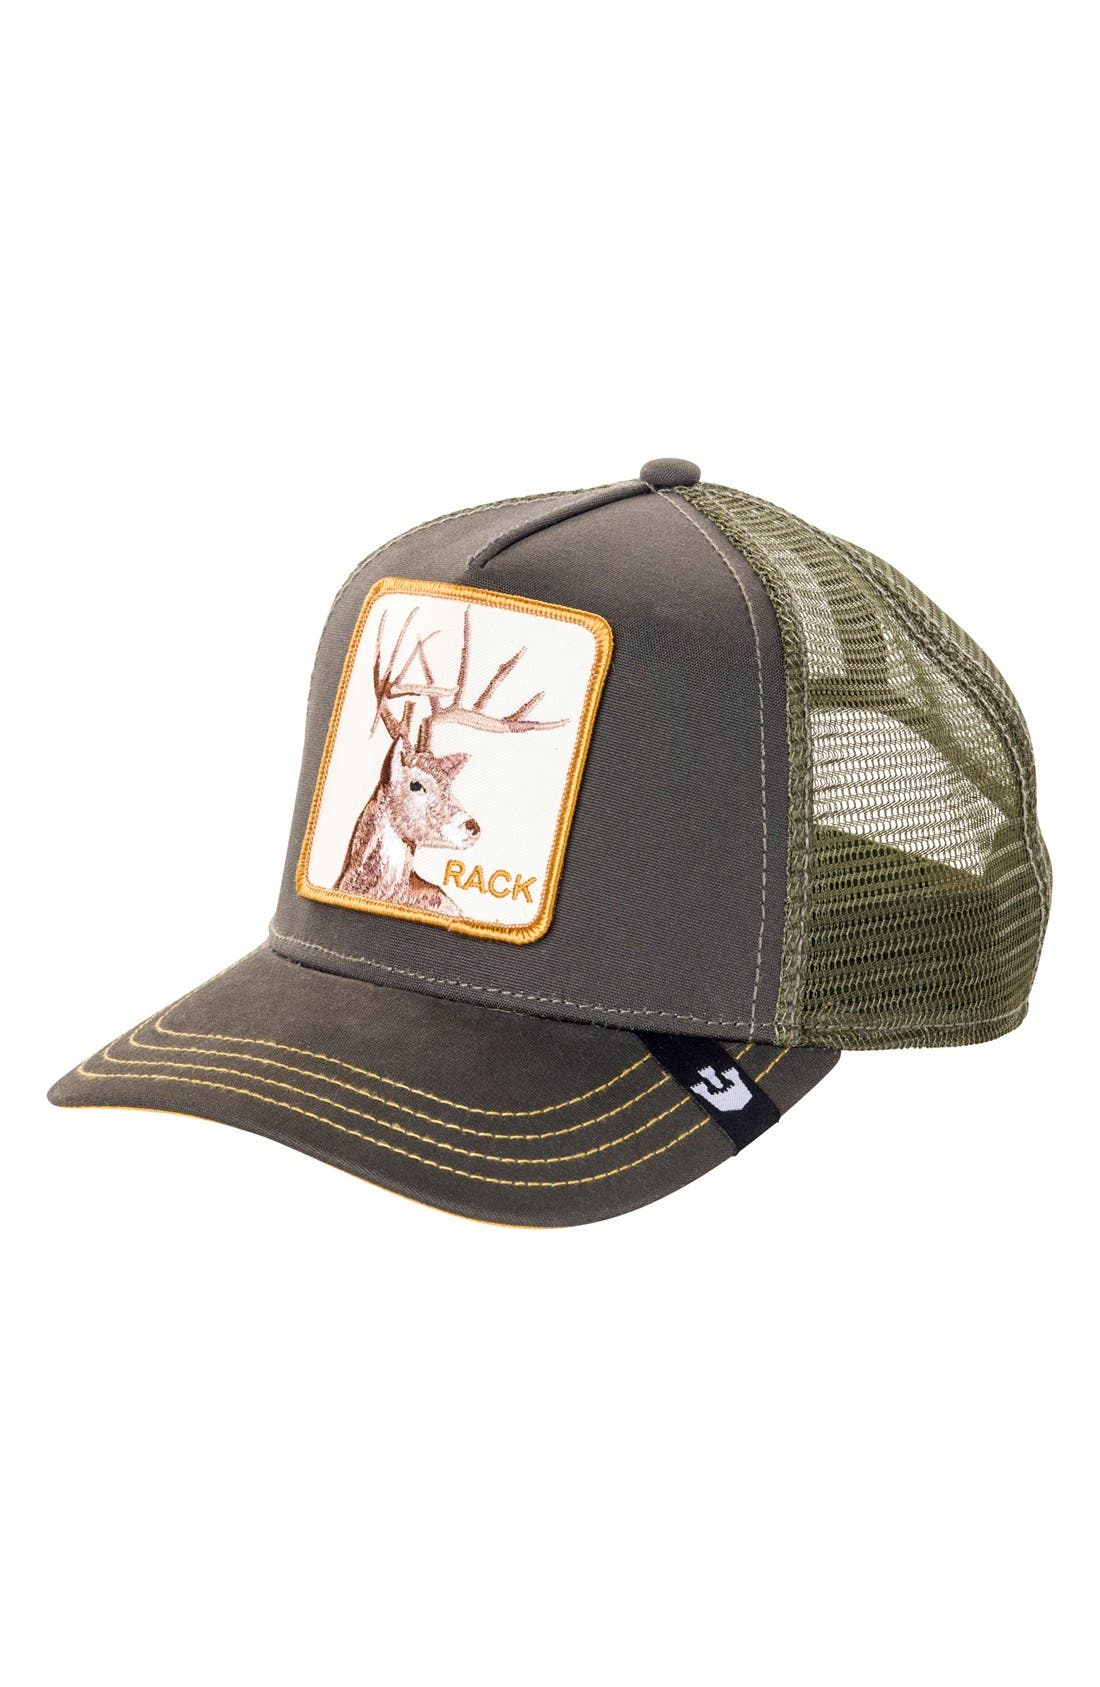 'Animal Farm - Rack' Trucker Hat,                             Main thumbnail 1, color,                             Olive